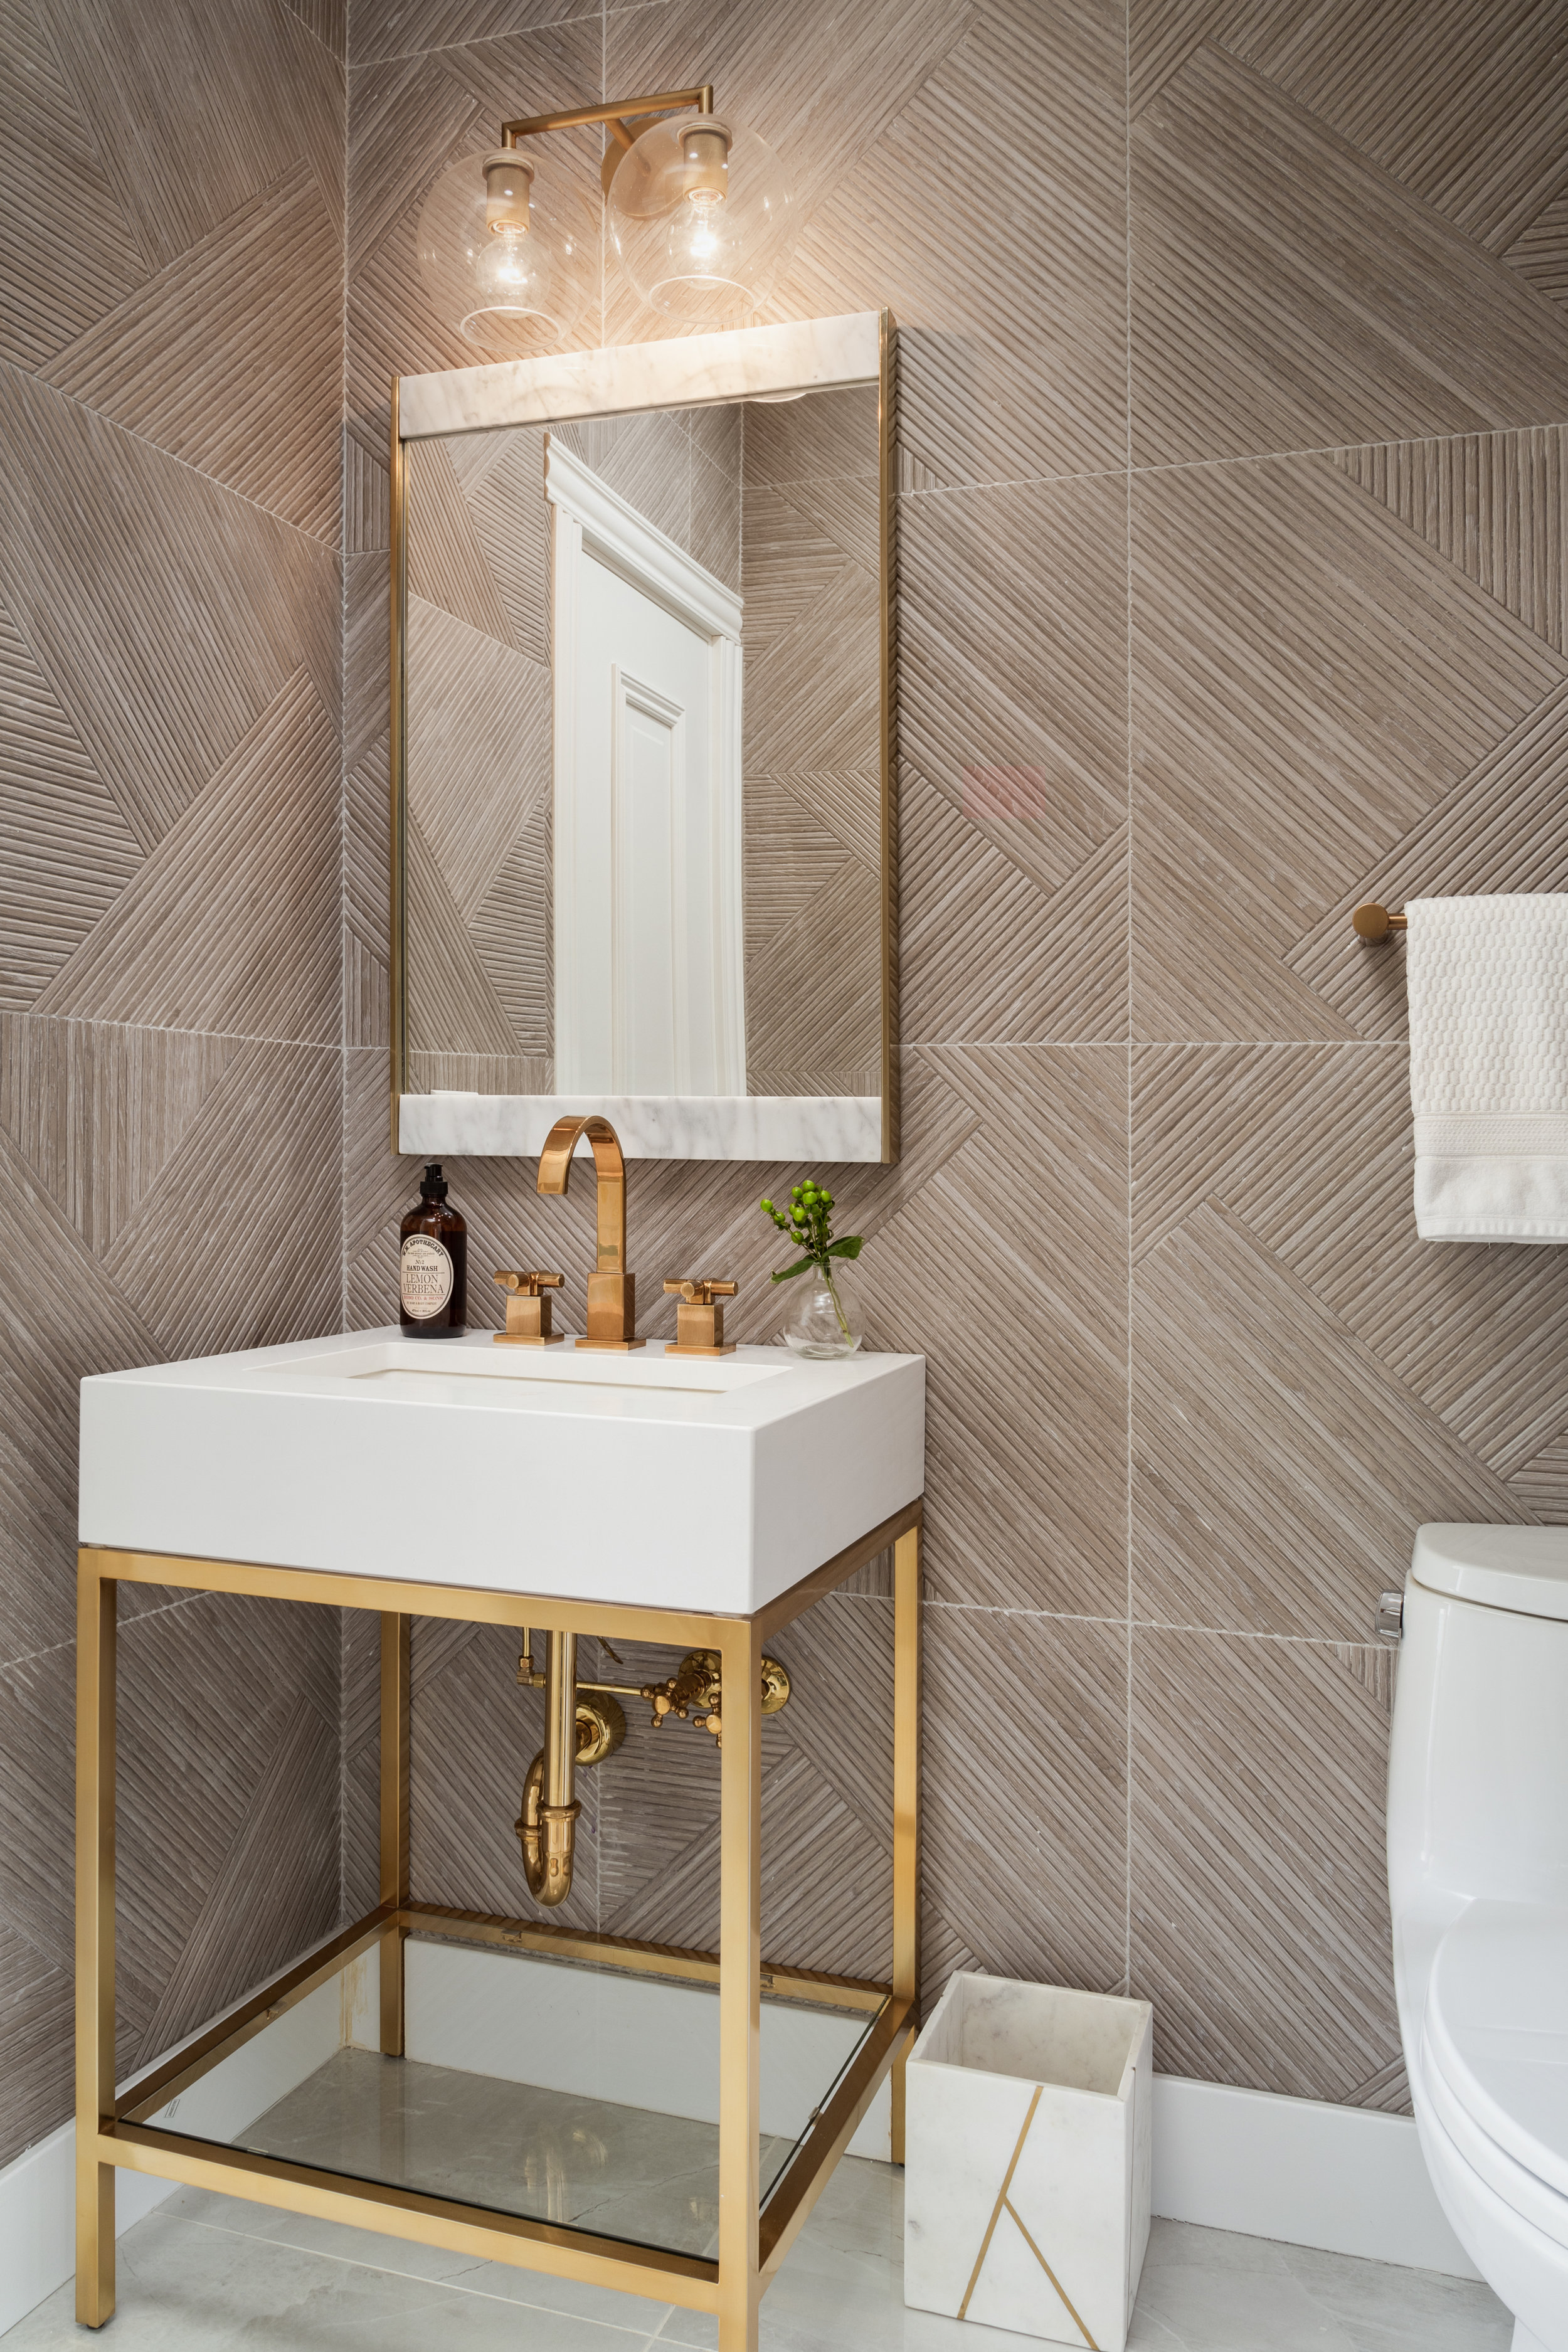 The Powder Room needed to be special. We tiled all four walls with a textural wood-looking tile that carried in the same colors and tones from the kitchen backsplash but in a more random pattern. A brass and white pedestal sink acts as jewelry in the room and is a more delicate balance from the heavy texture on the walls.